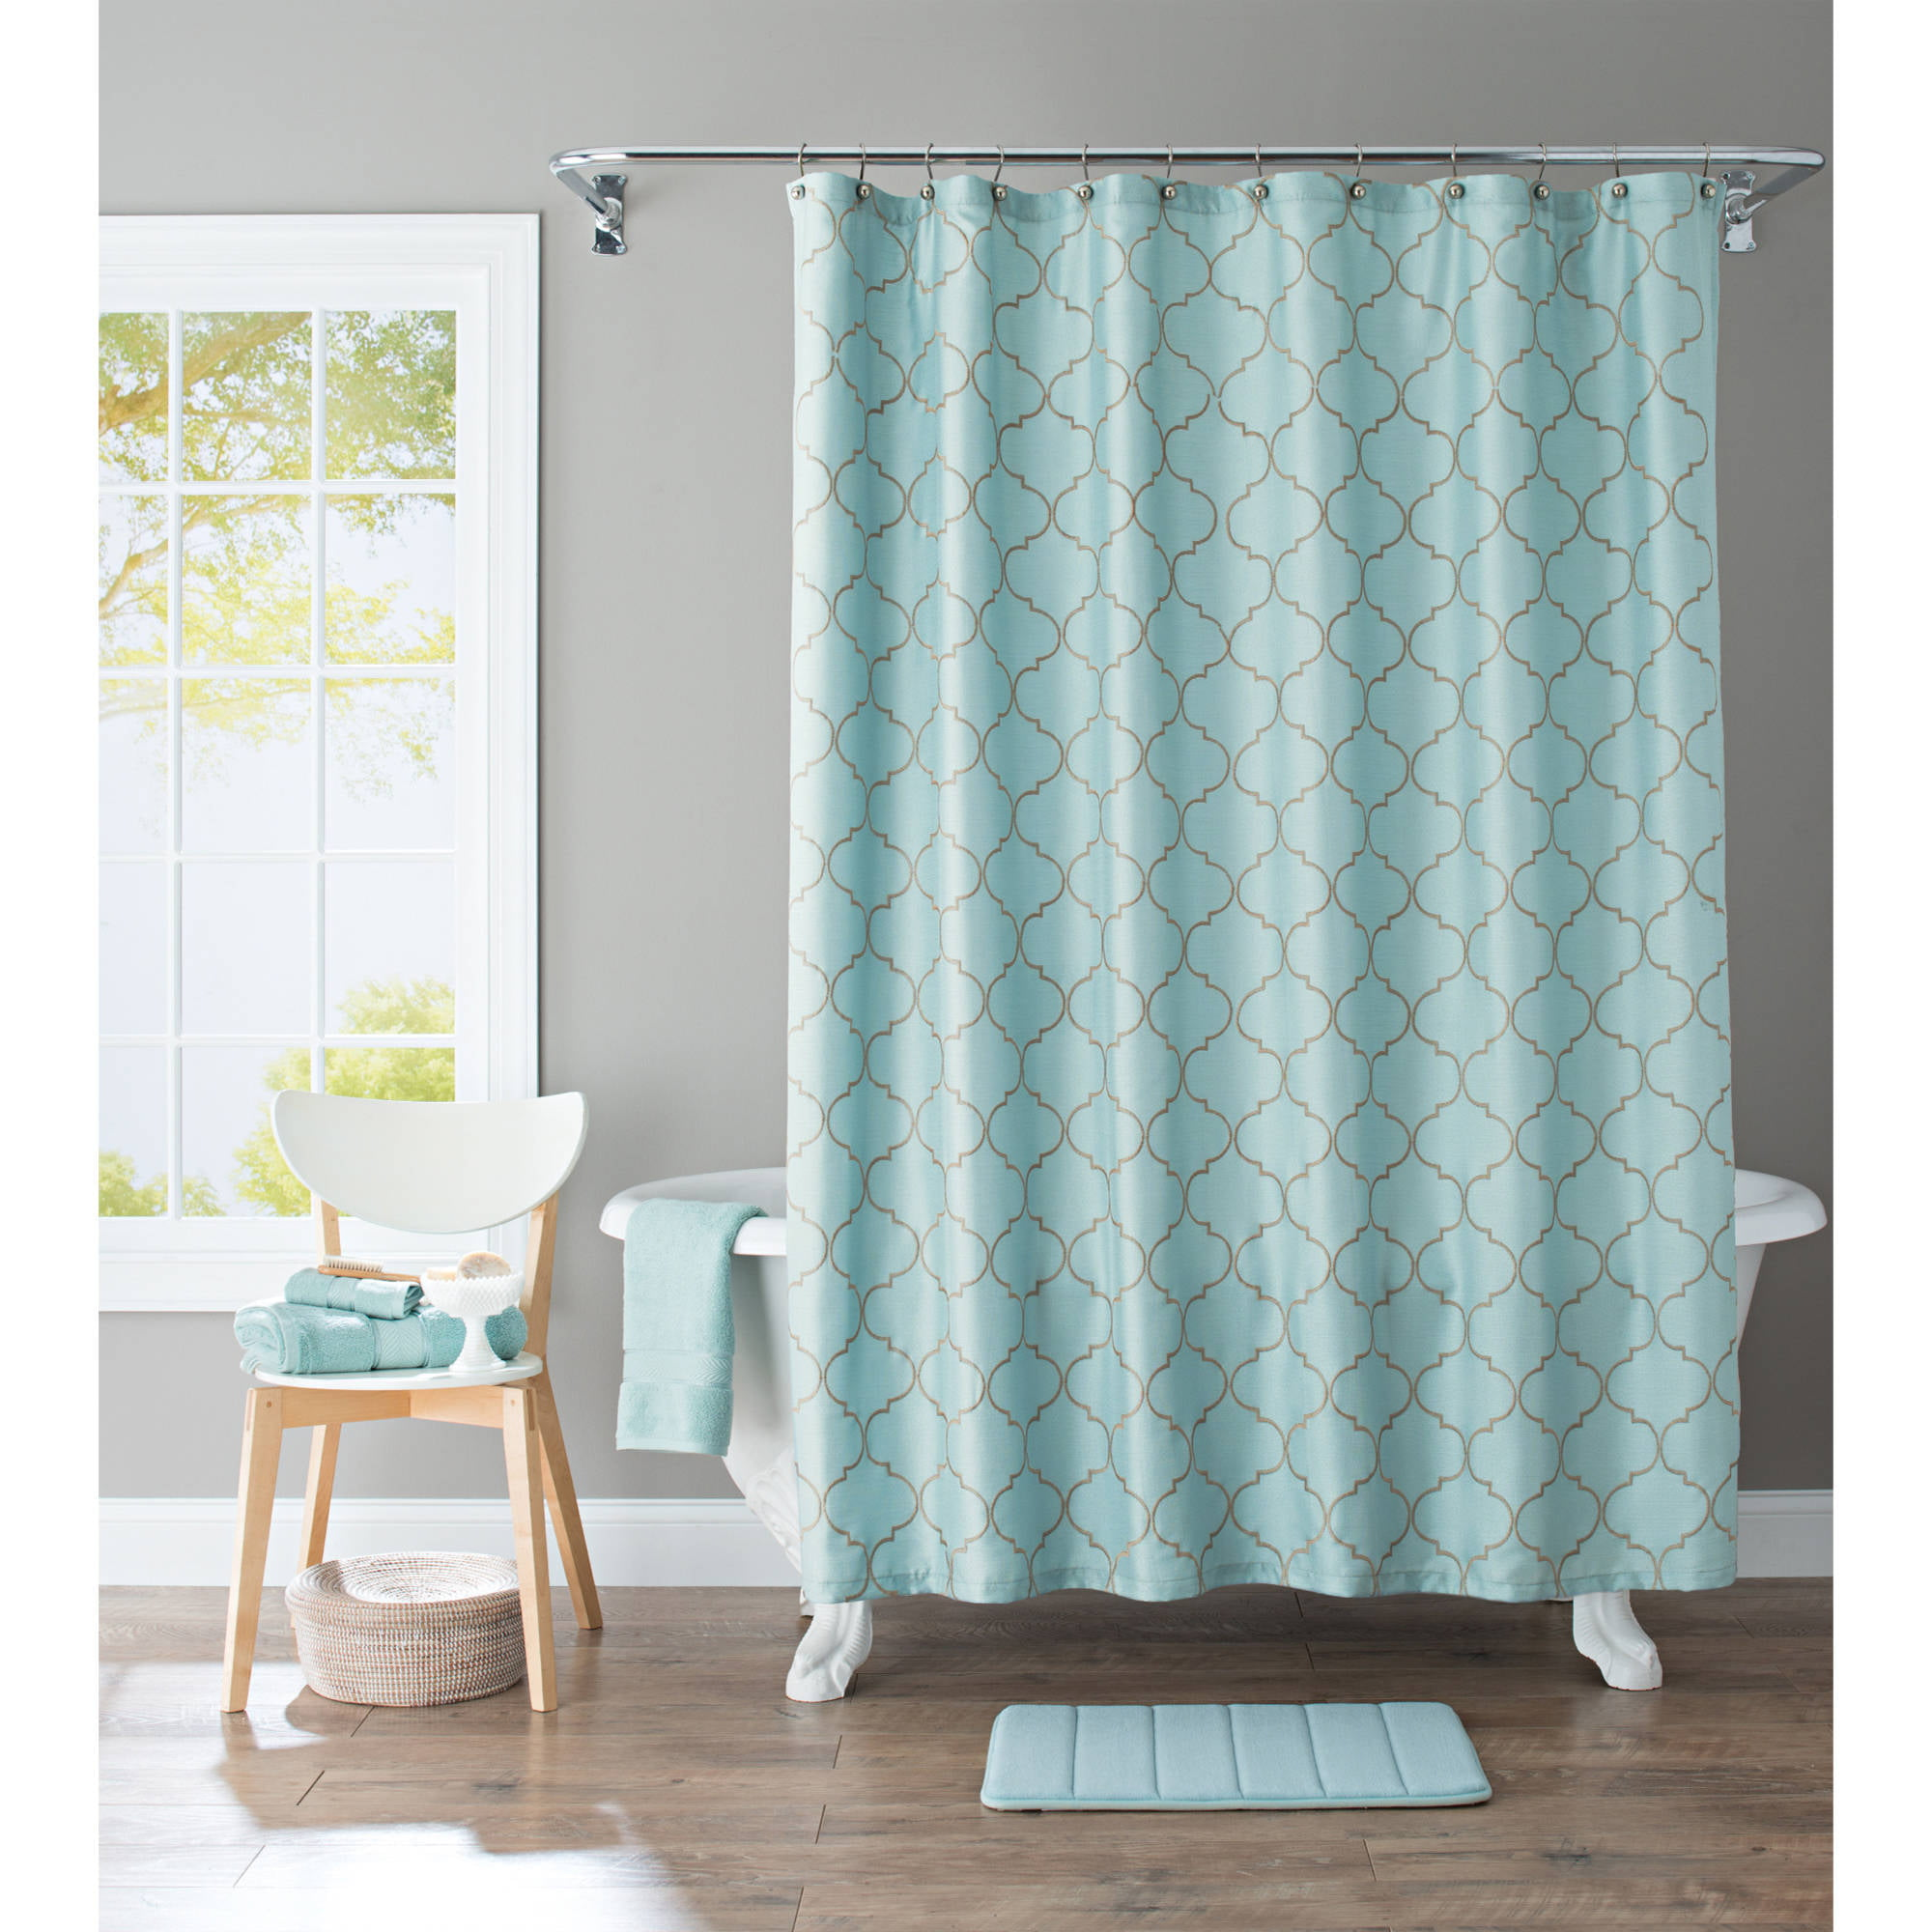 Solid teal shower curtain - Better Homes And Gardens Scalloped Trellis Embroidered Fabric Shower Curtain